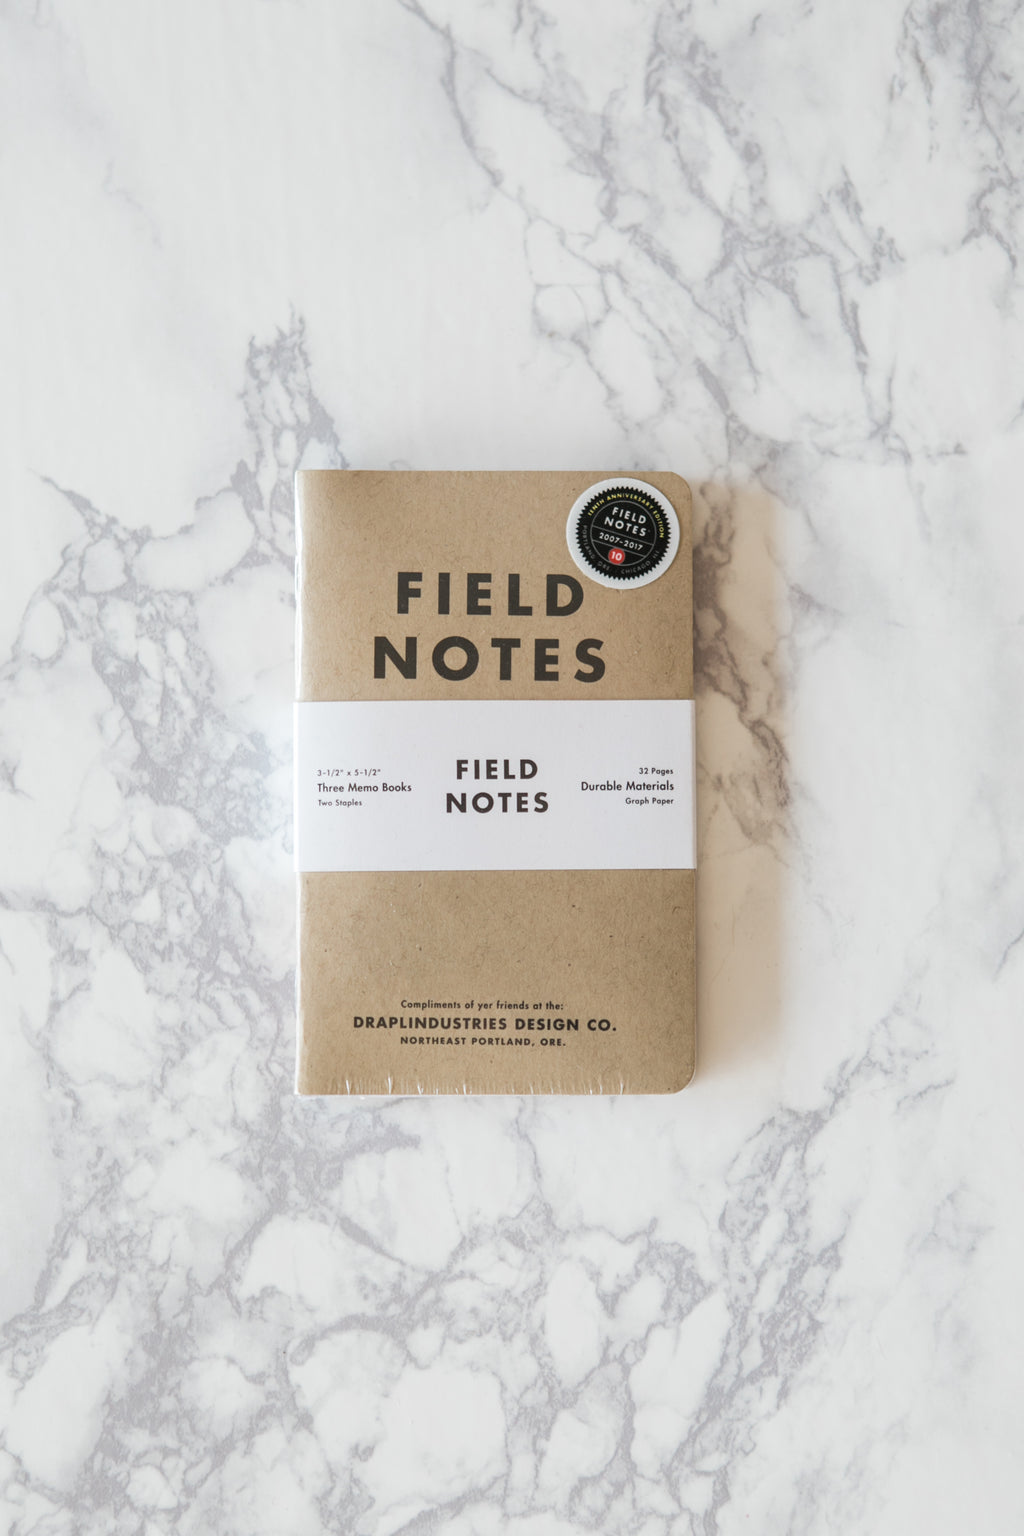 Field Notes Memo Books - Field Notes